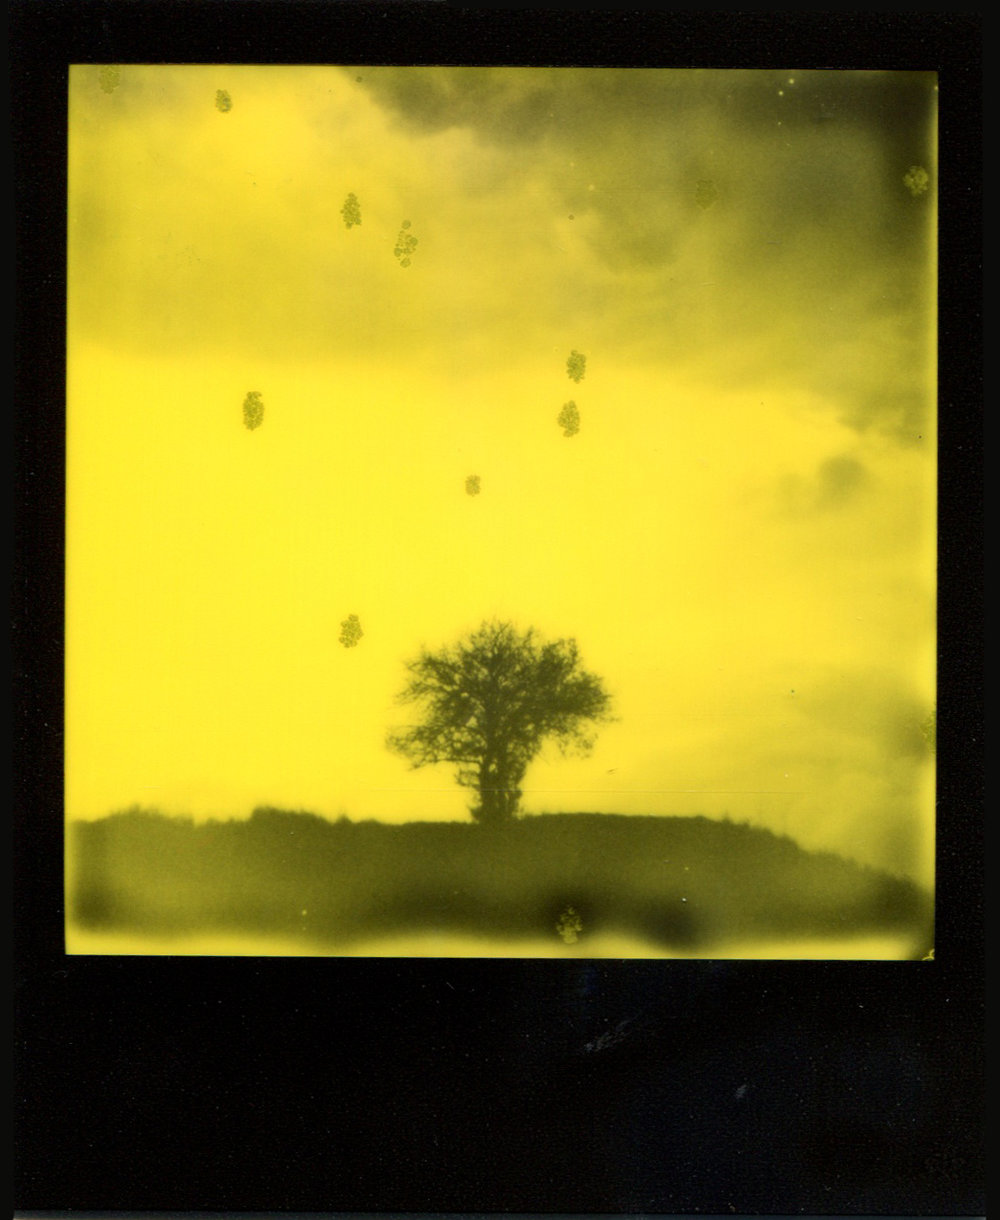 Eternal Loneliness | Polaroid Impulse AF | Impossible Colour 600 | Ostap Protsyk